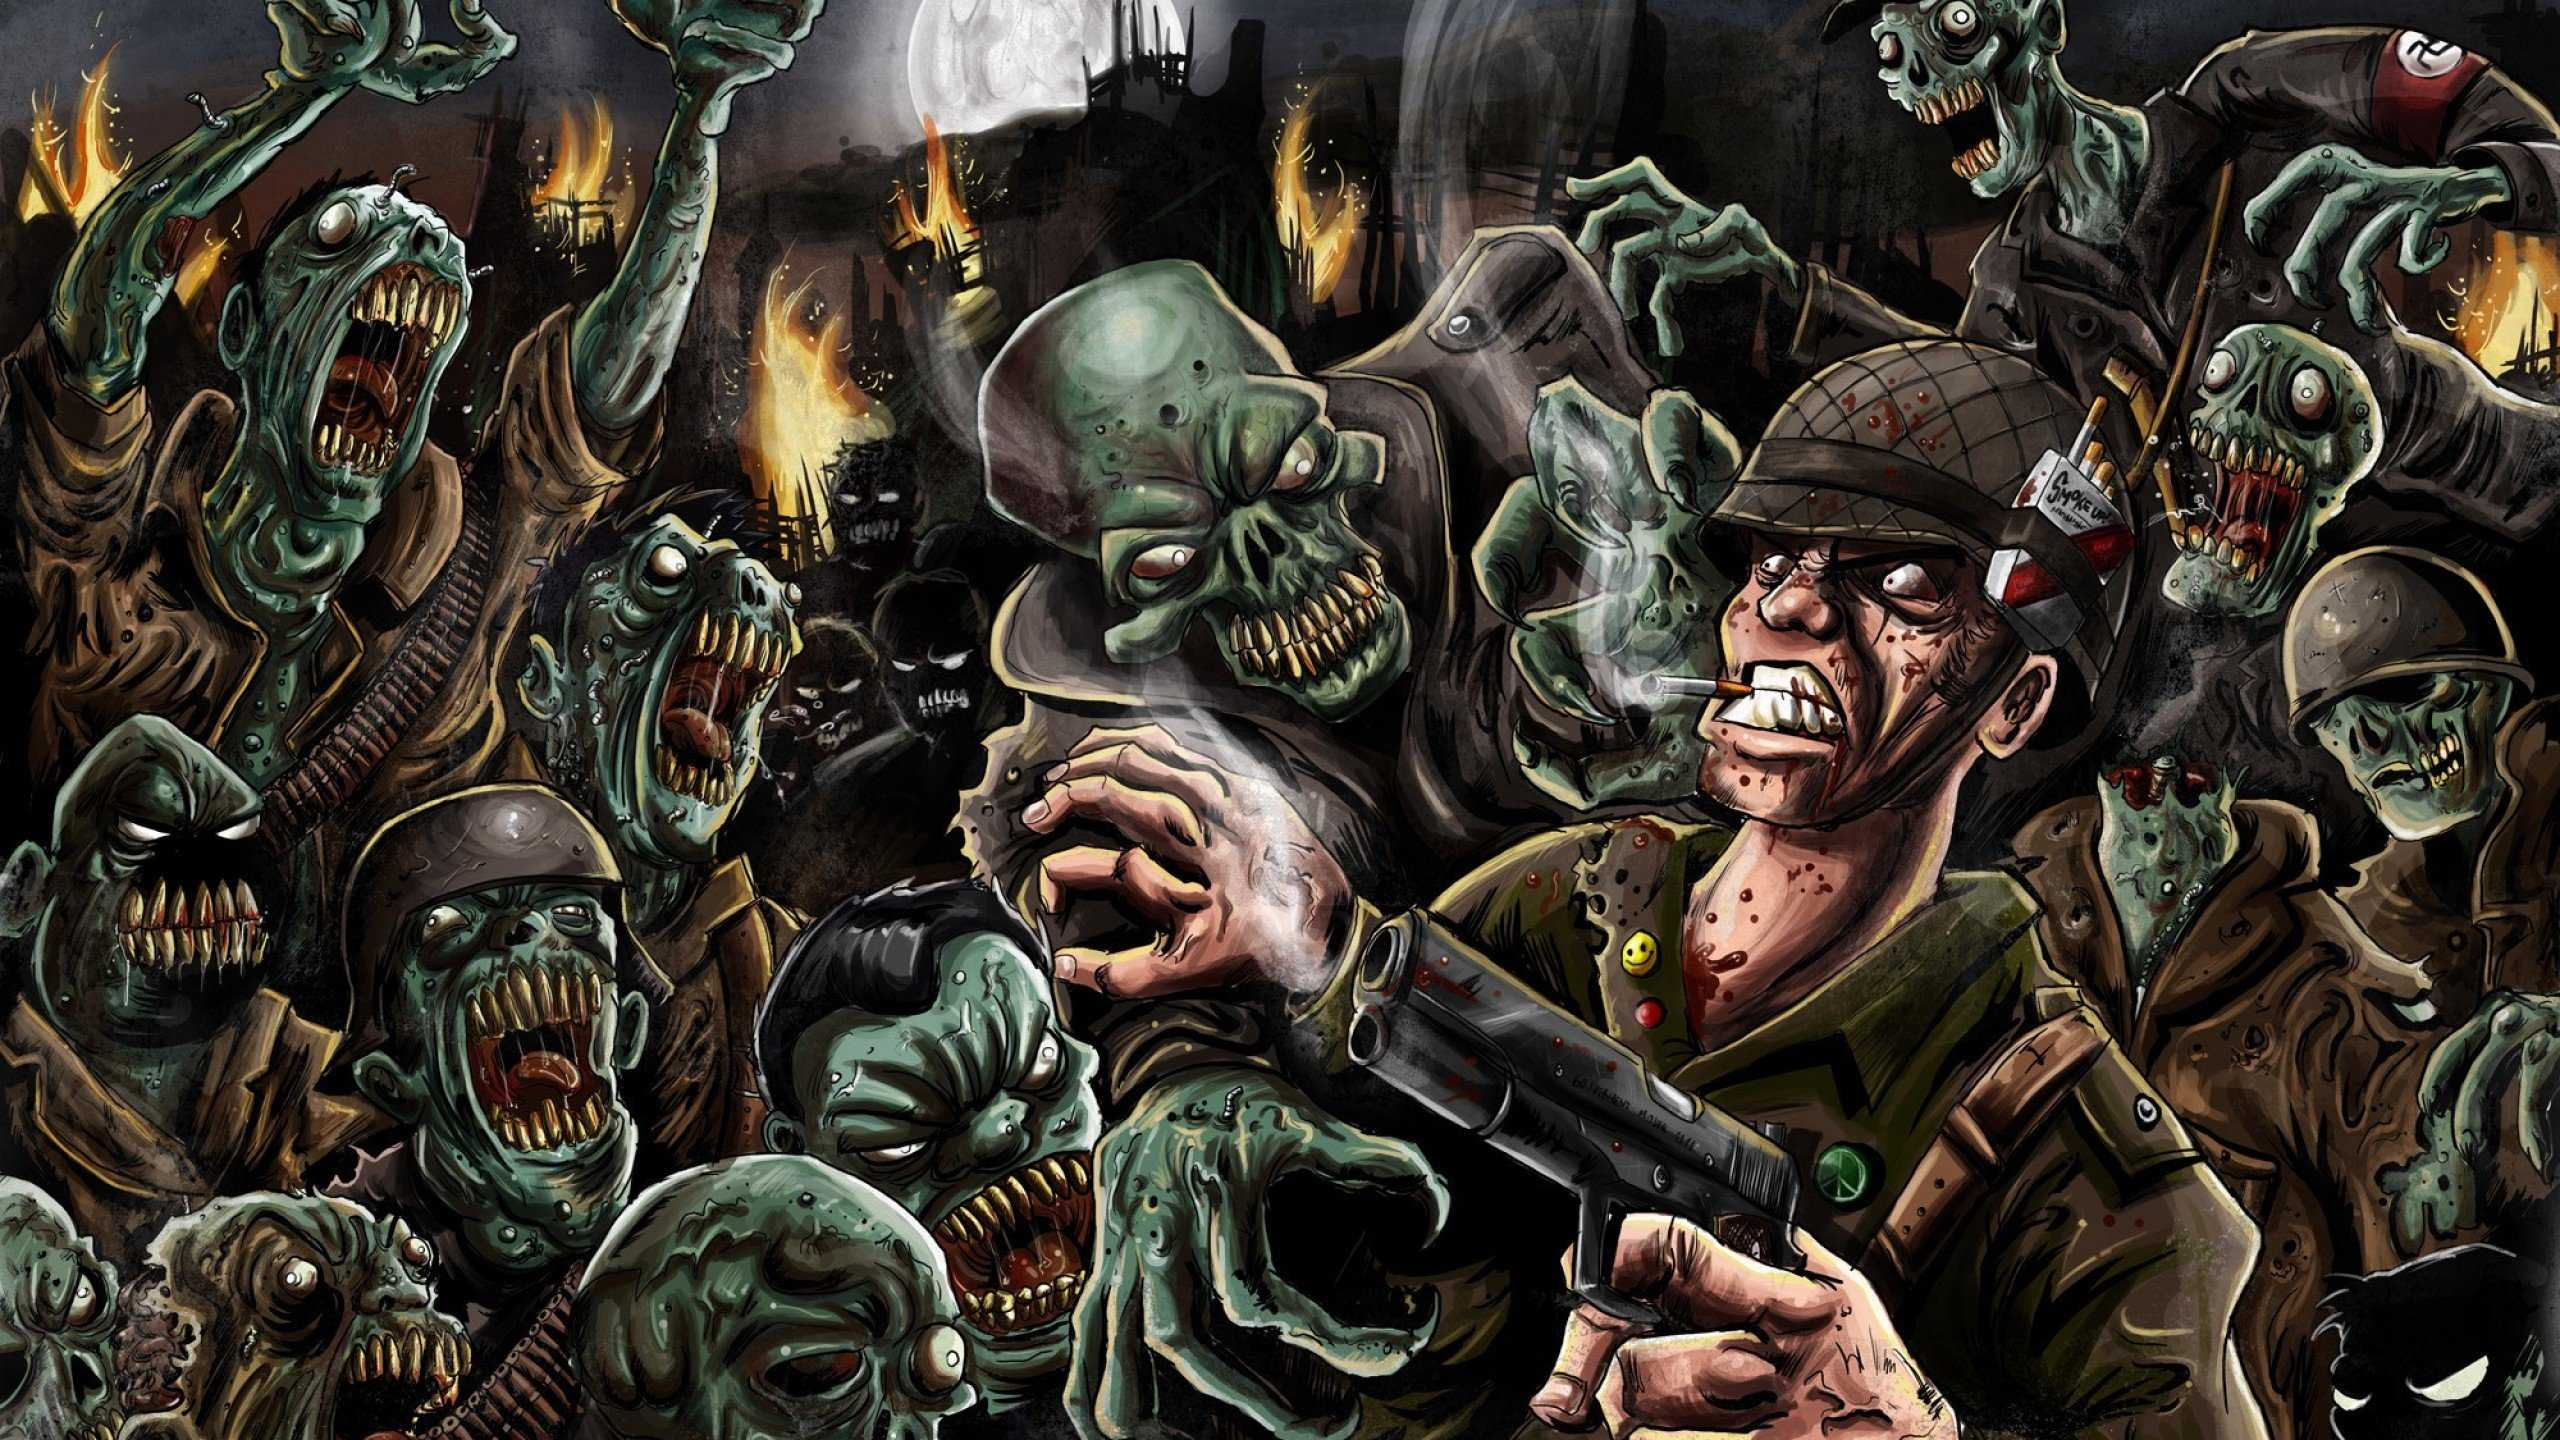 Call Of Duty World At War Wallpapers 1920x1080 Wallpaper Cave